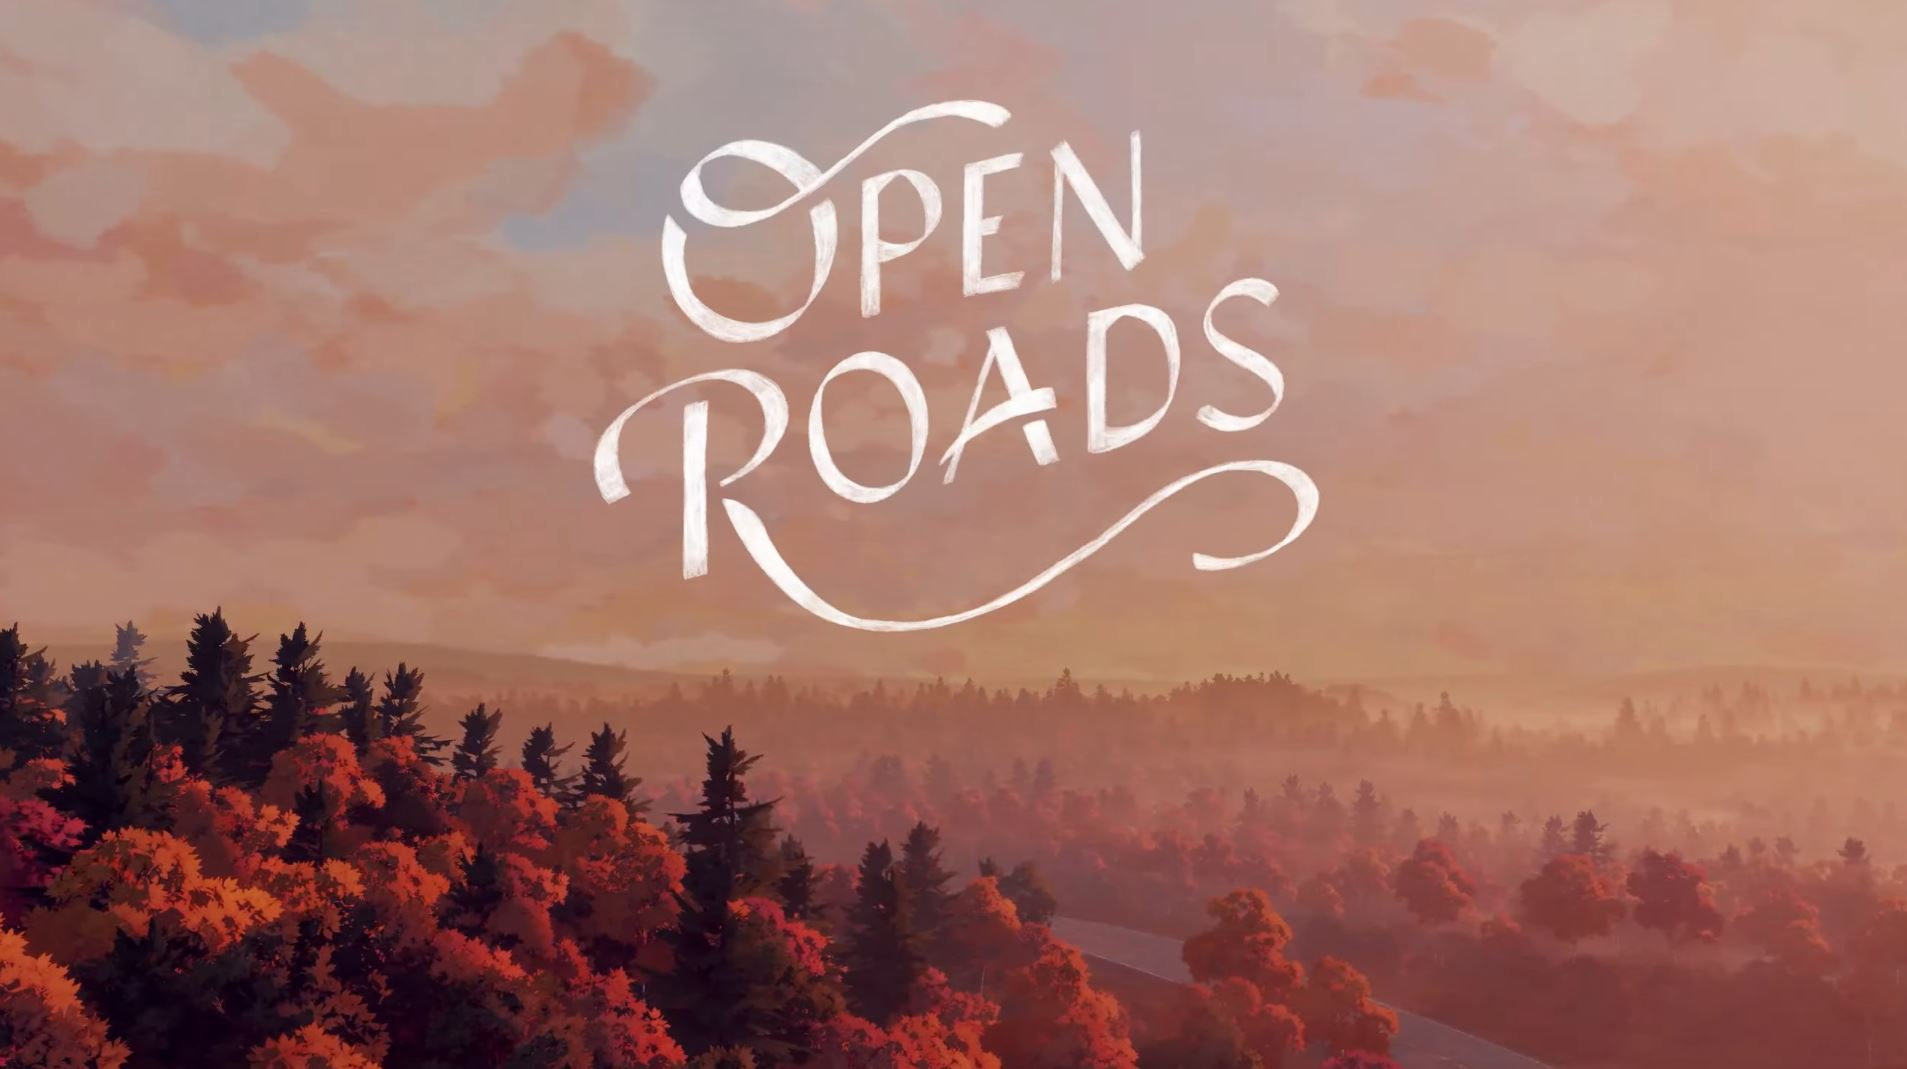 open-roads-ps5-ps4-news-reviews-videos